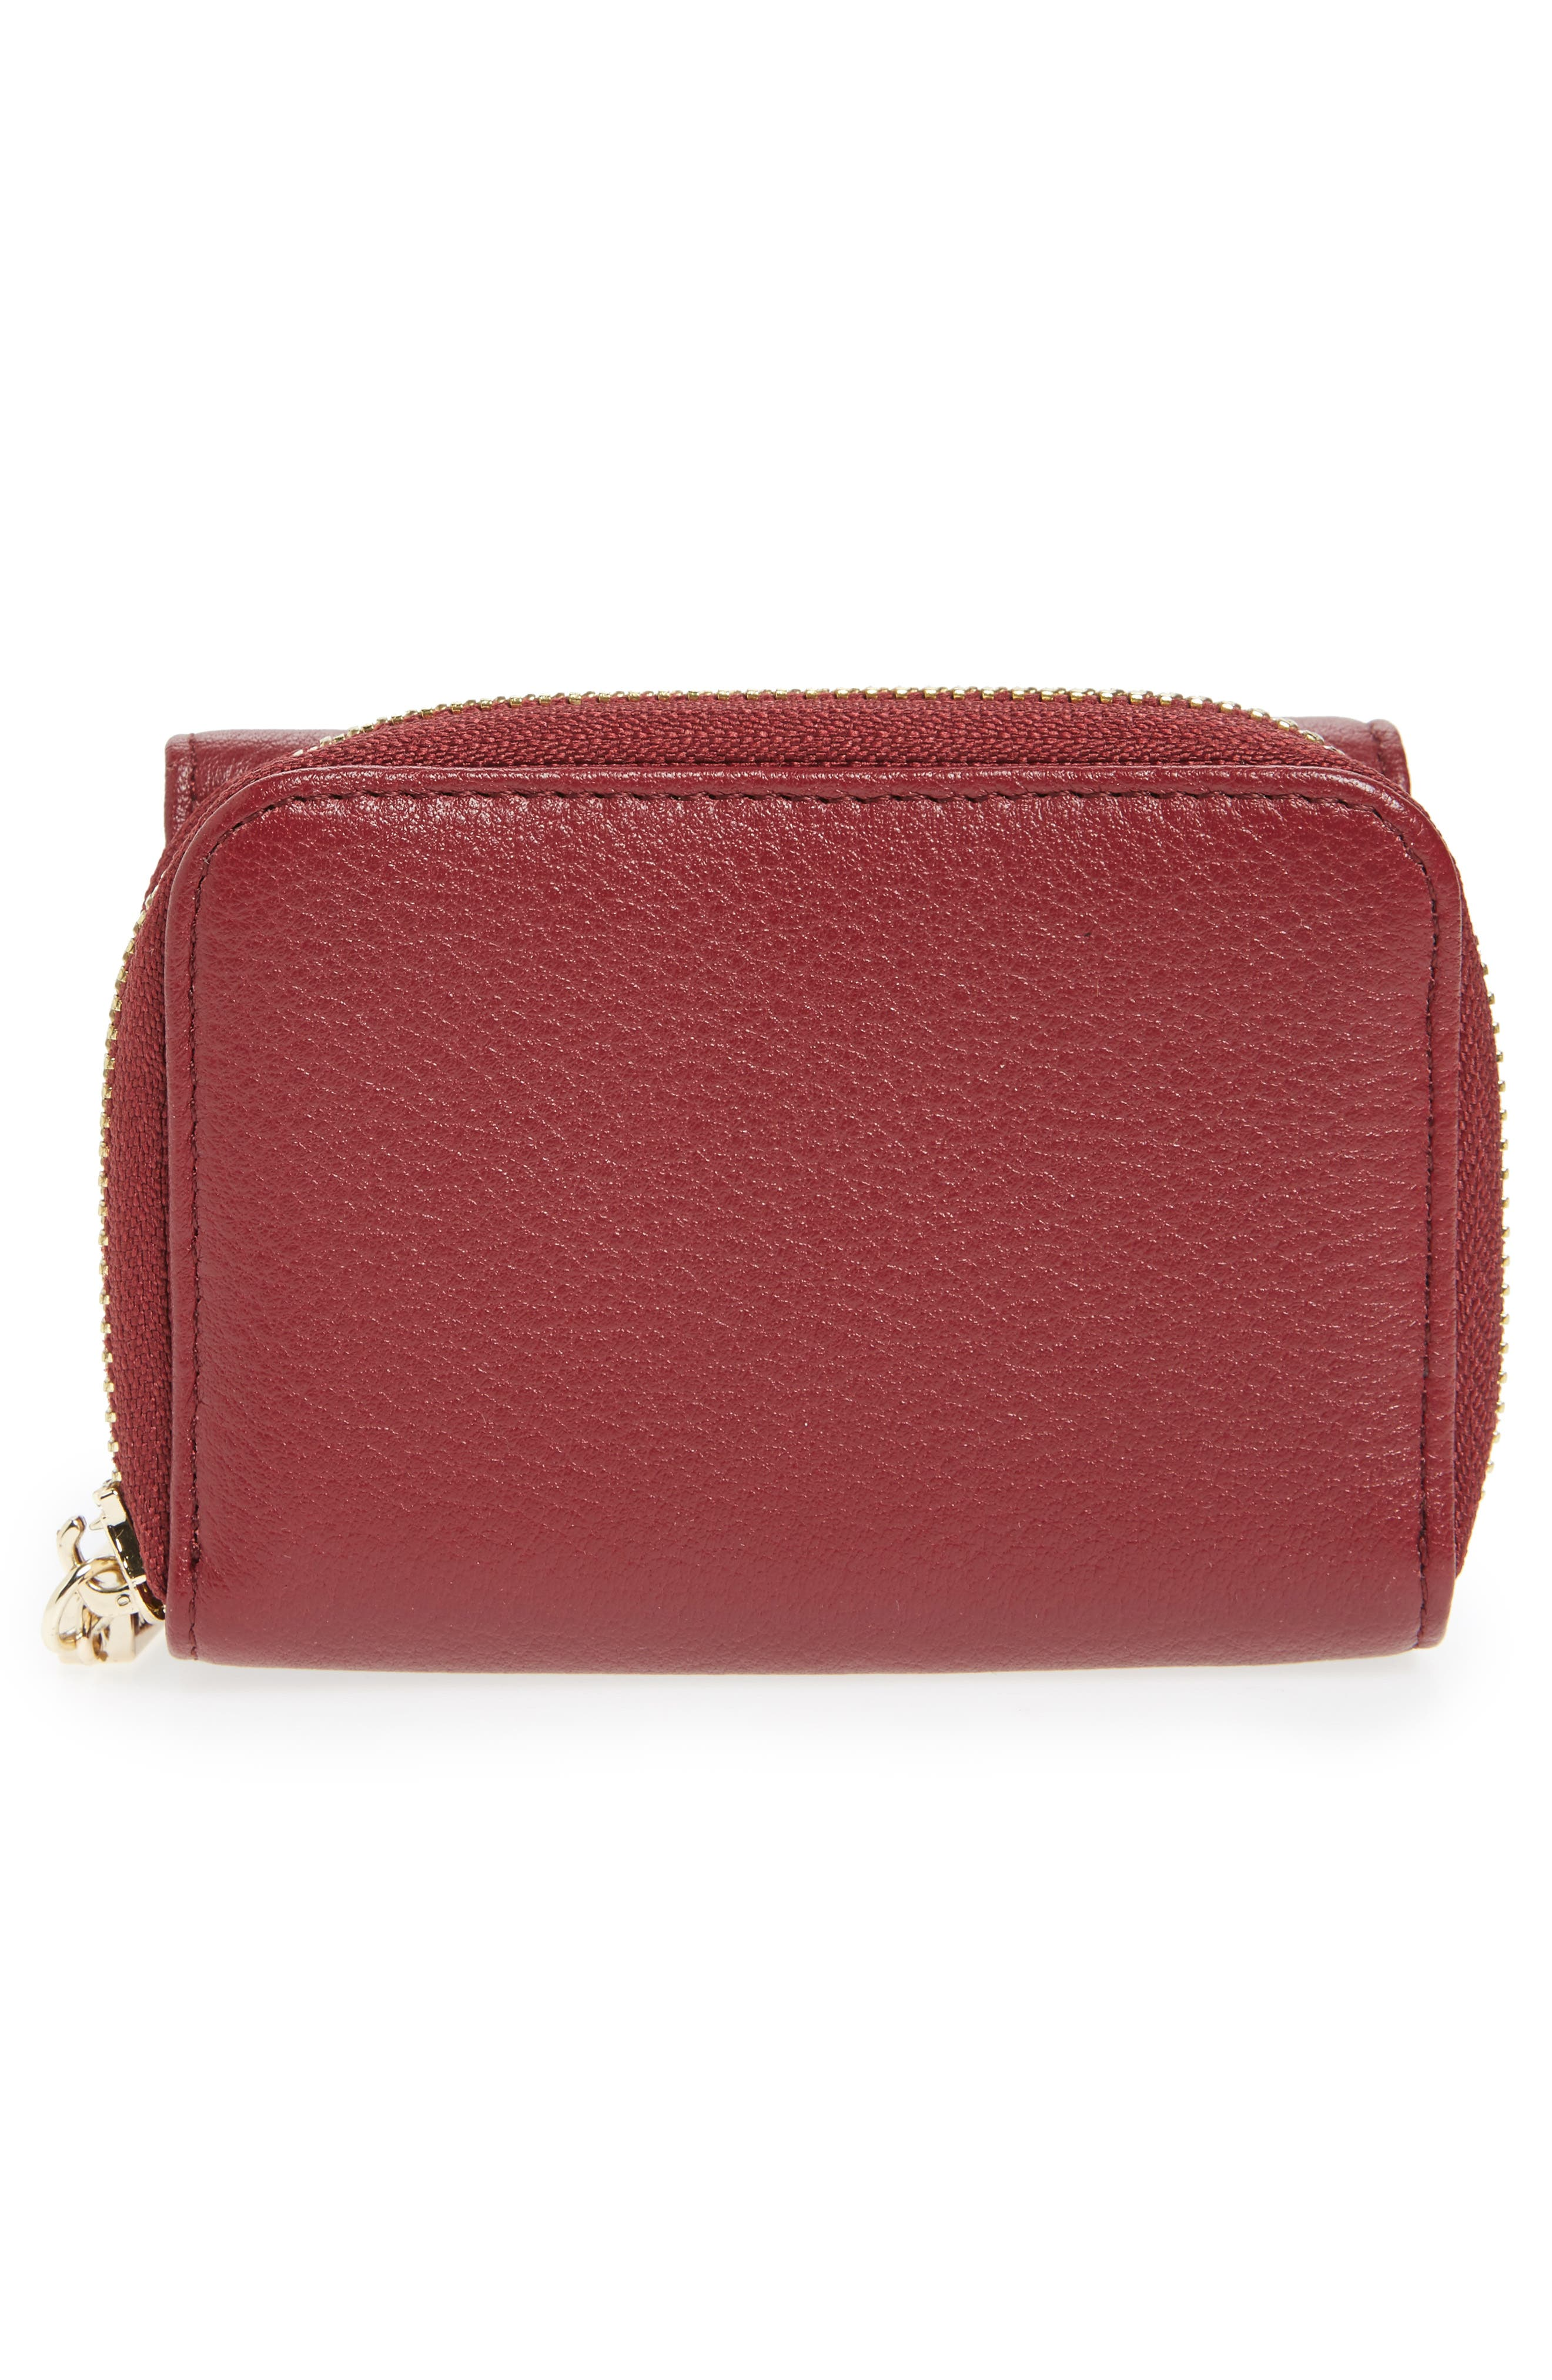 Céline Dion Small Adagio Leather Wallet,                             Alternate thumbnail 2, color,                             Dark Red